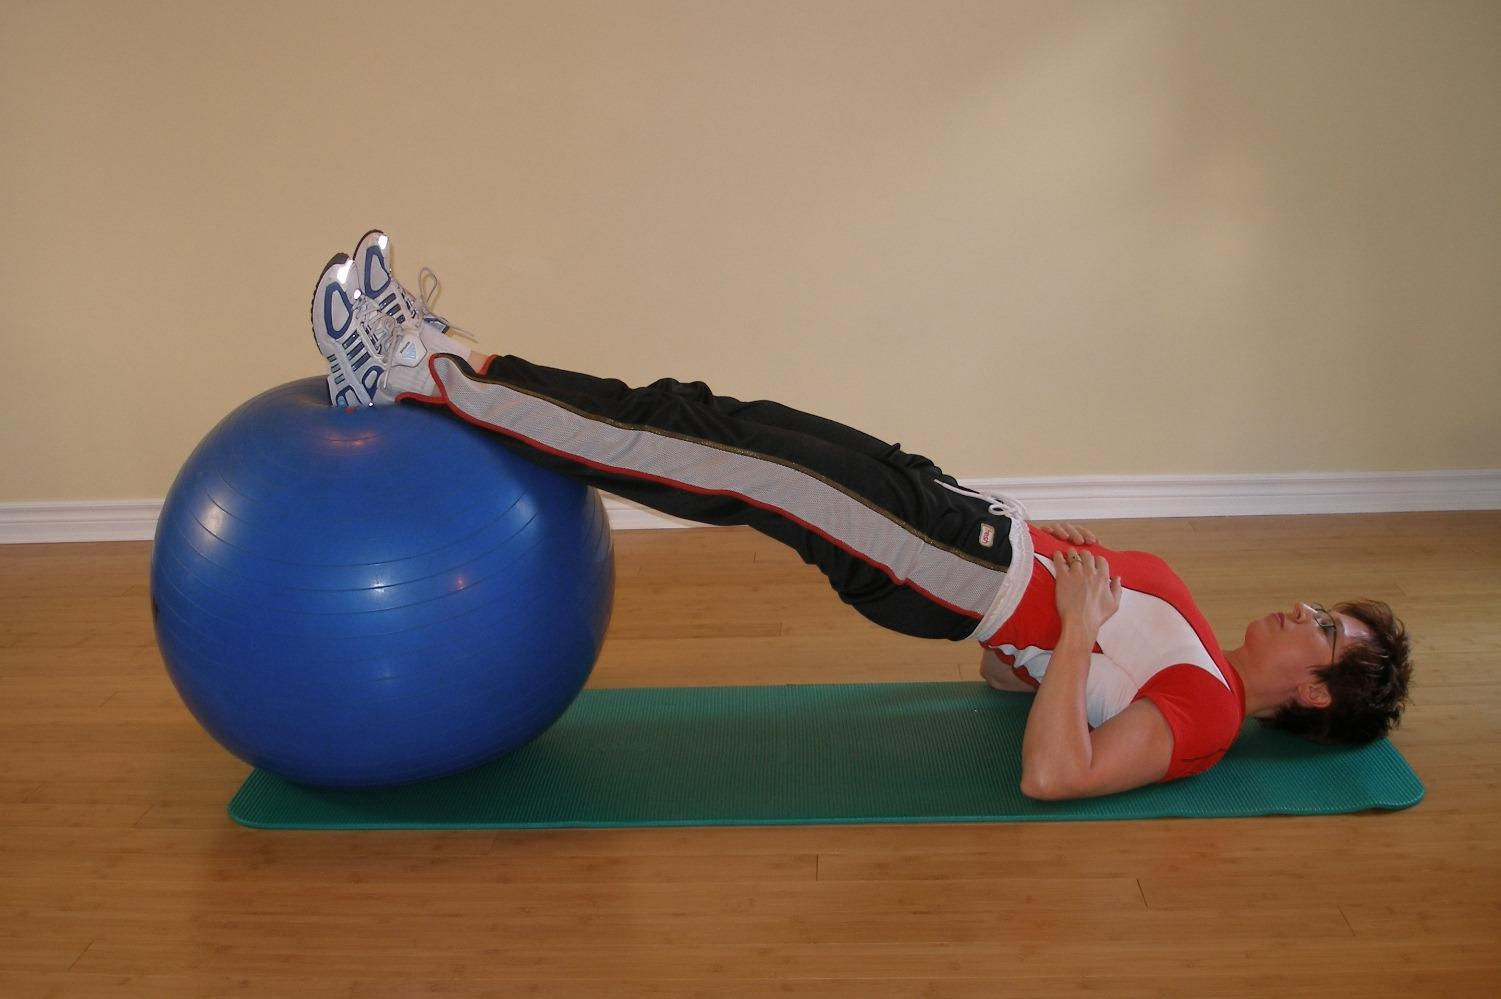 exercise ball briding hands on trunk position 2